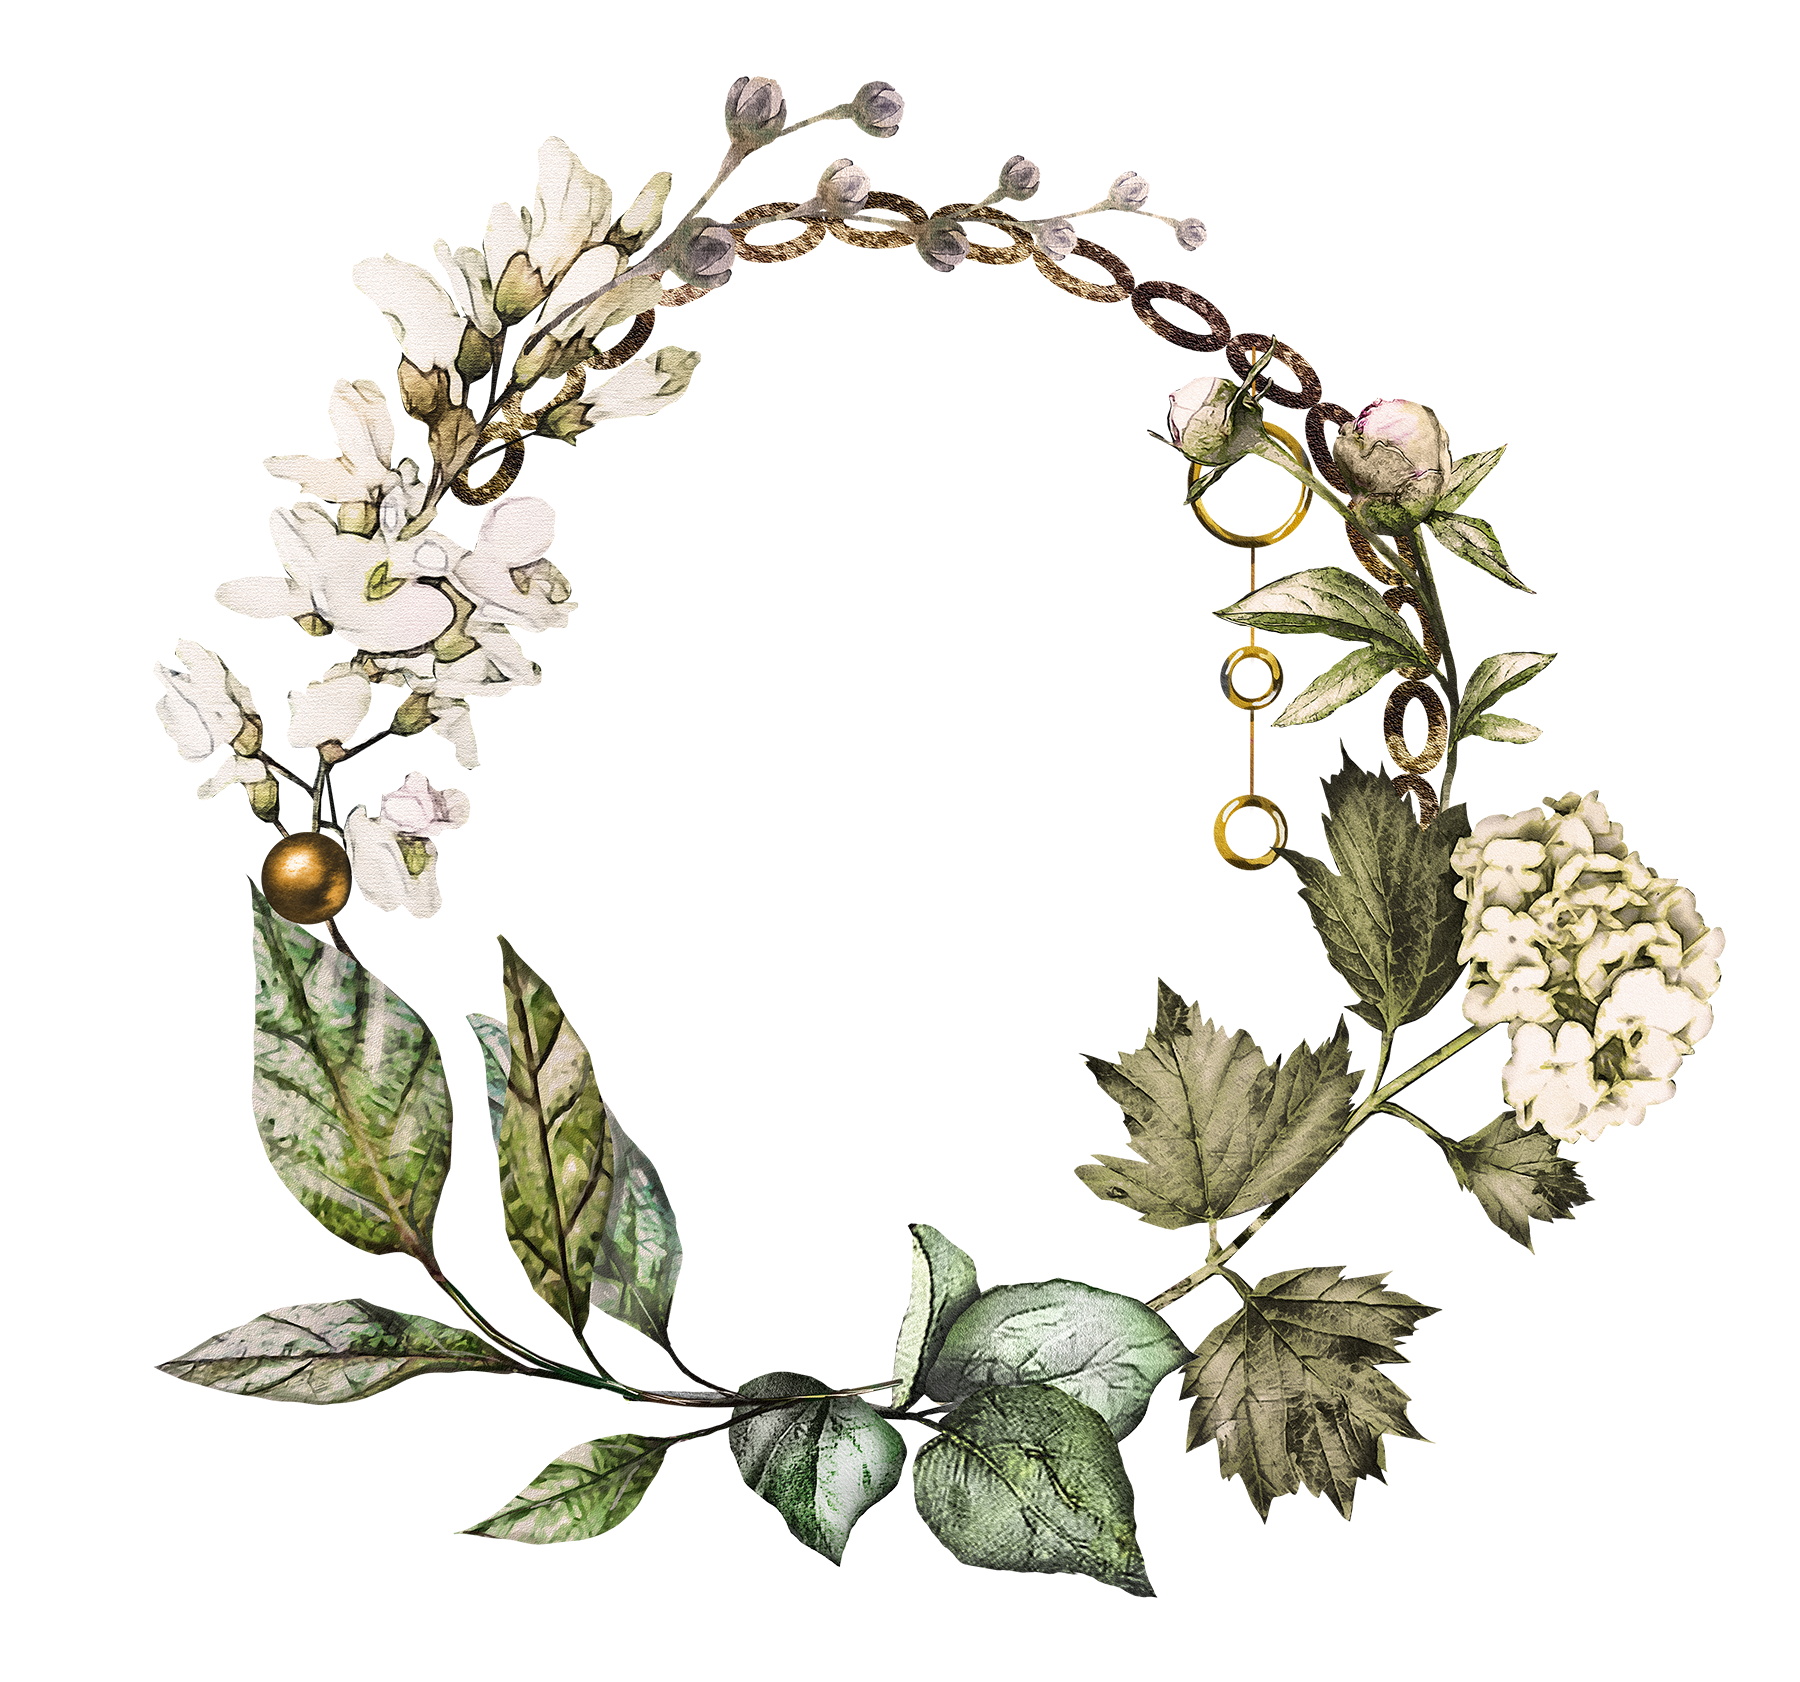 svg royalty free library Ivy wreath clipart. Pin by on pinterest